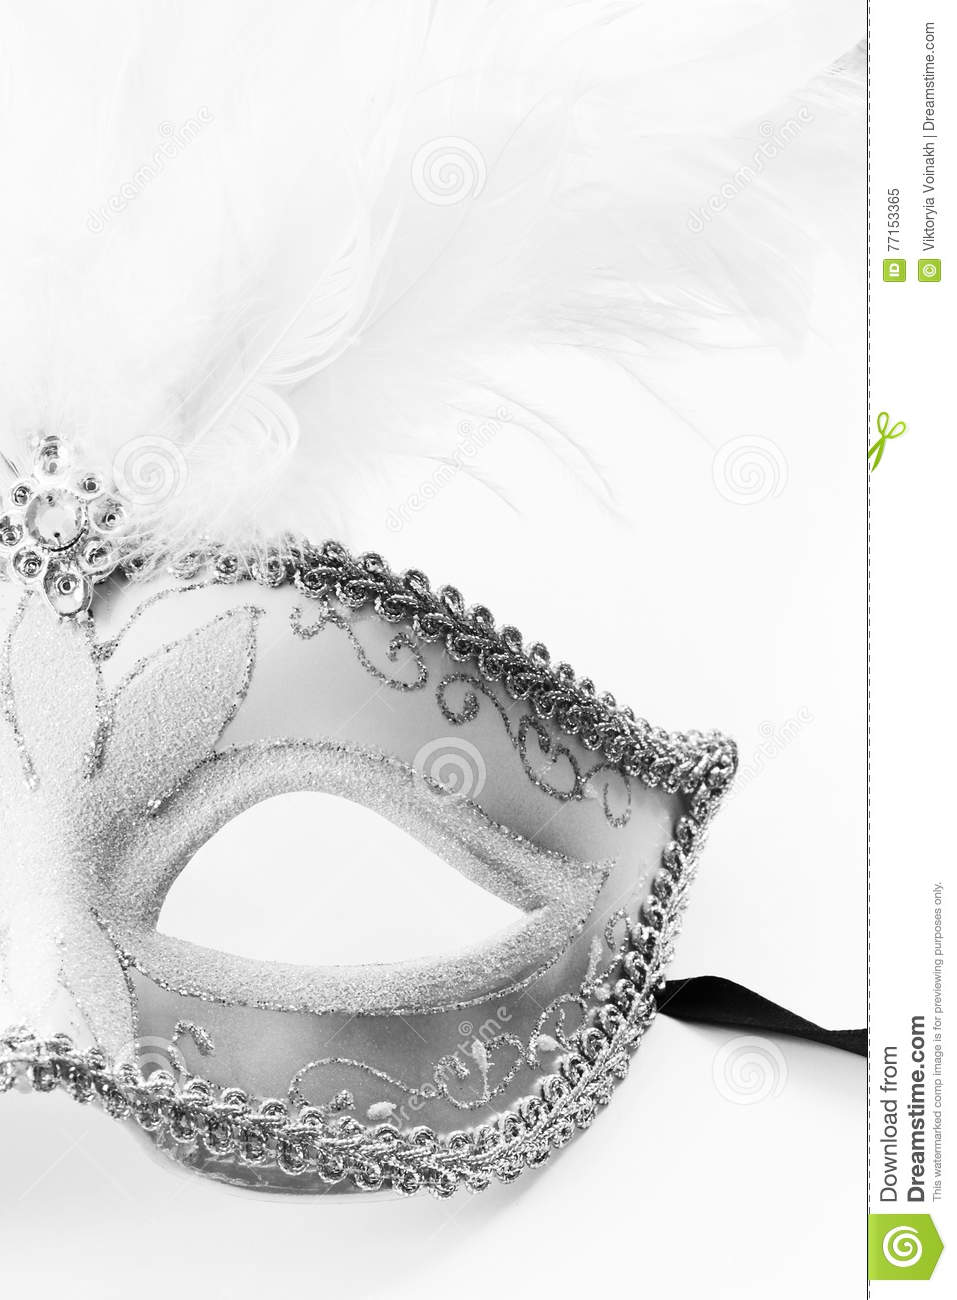 Mascarade d isolement de masque